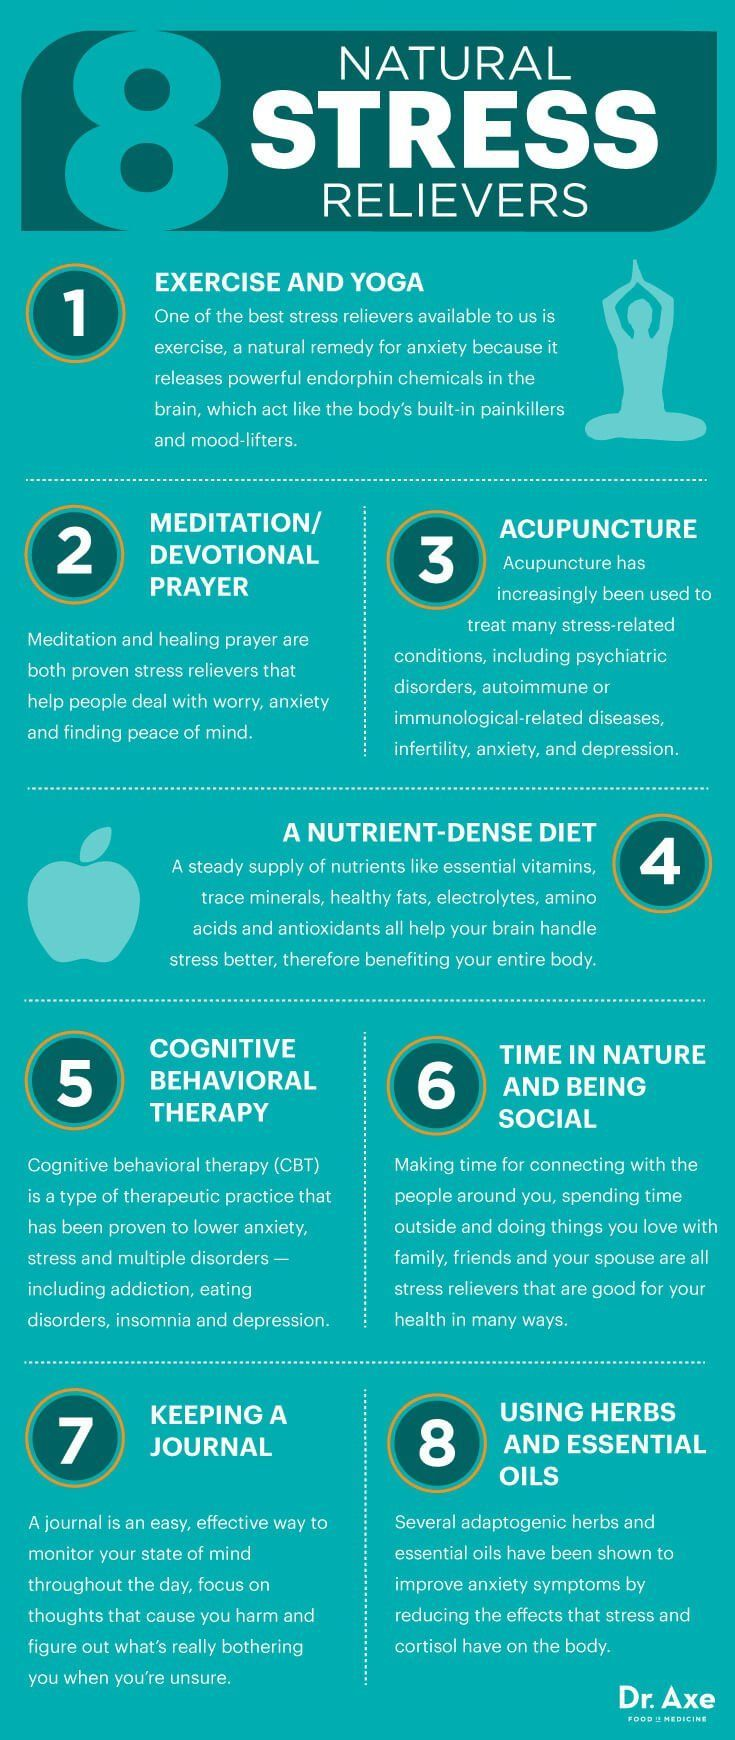 Always Stressed? 8 Natural Stress Relievers To Try - Dr. Axe